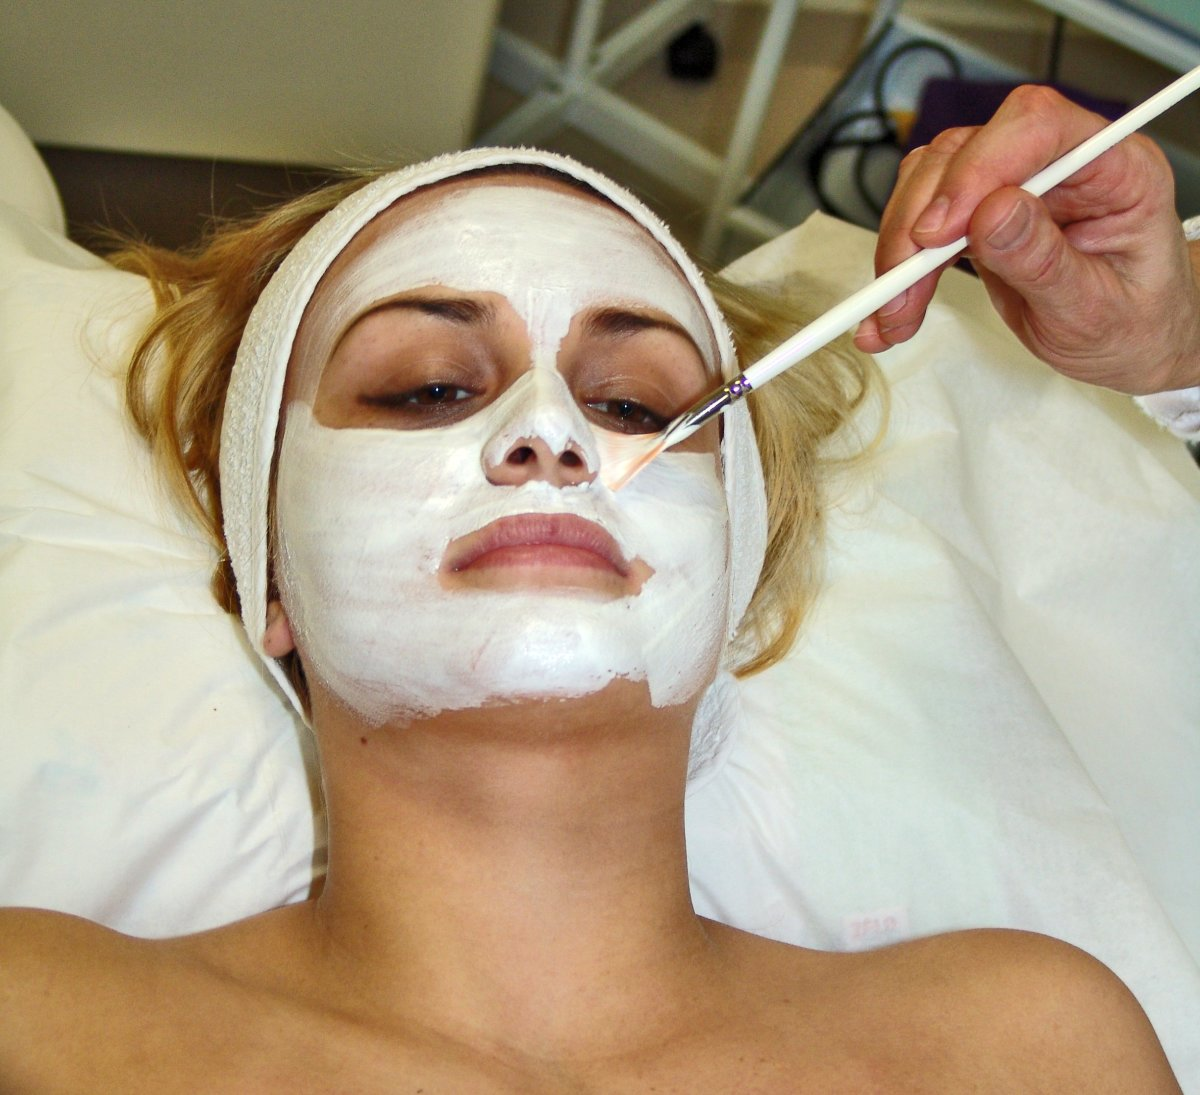 applying with a brush is quick, easy and less messy. exfoliating masks are best applied with the fingertips